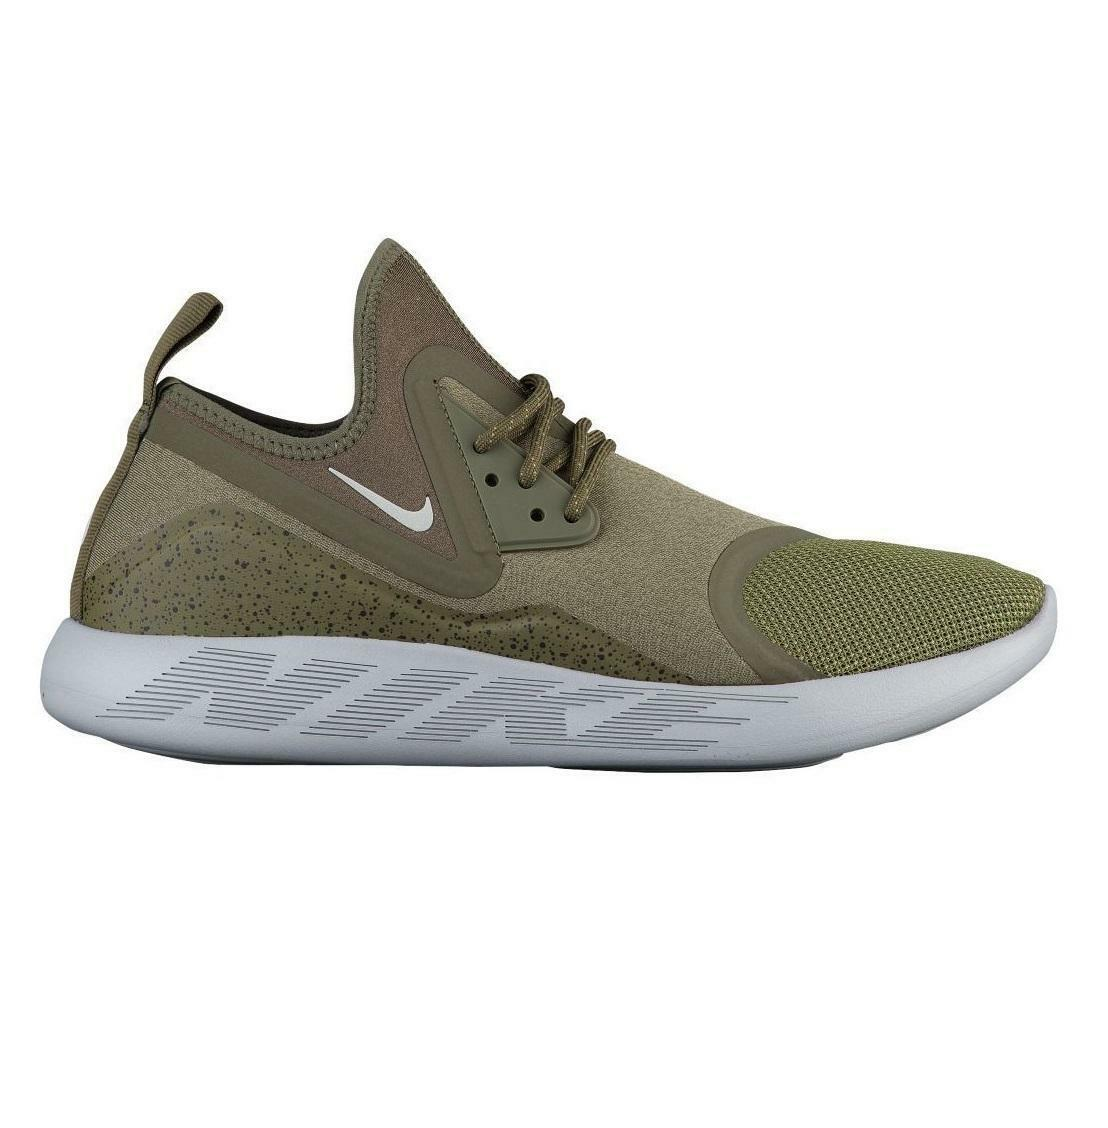 Mens NIKE NIKE NIKE LUNARCHARGE ESSENTIAL Medium Olive Trainers 923619 200 1a2872